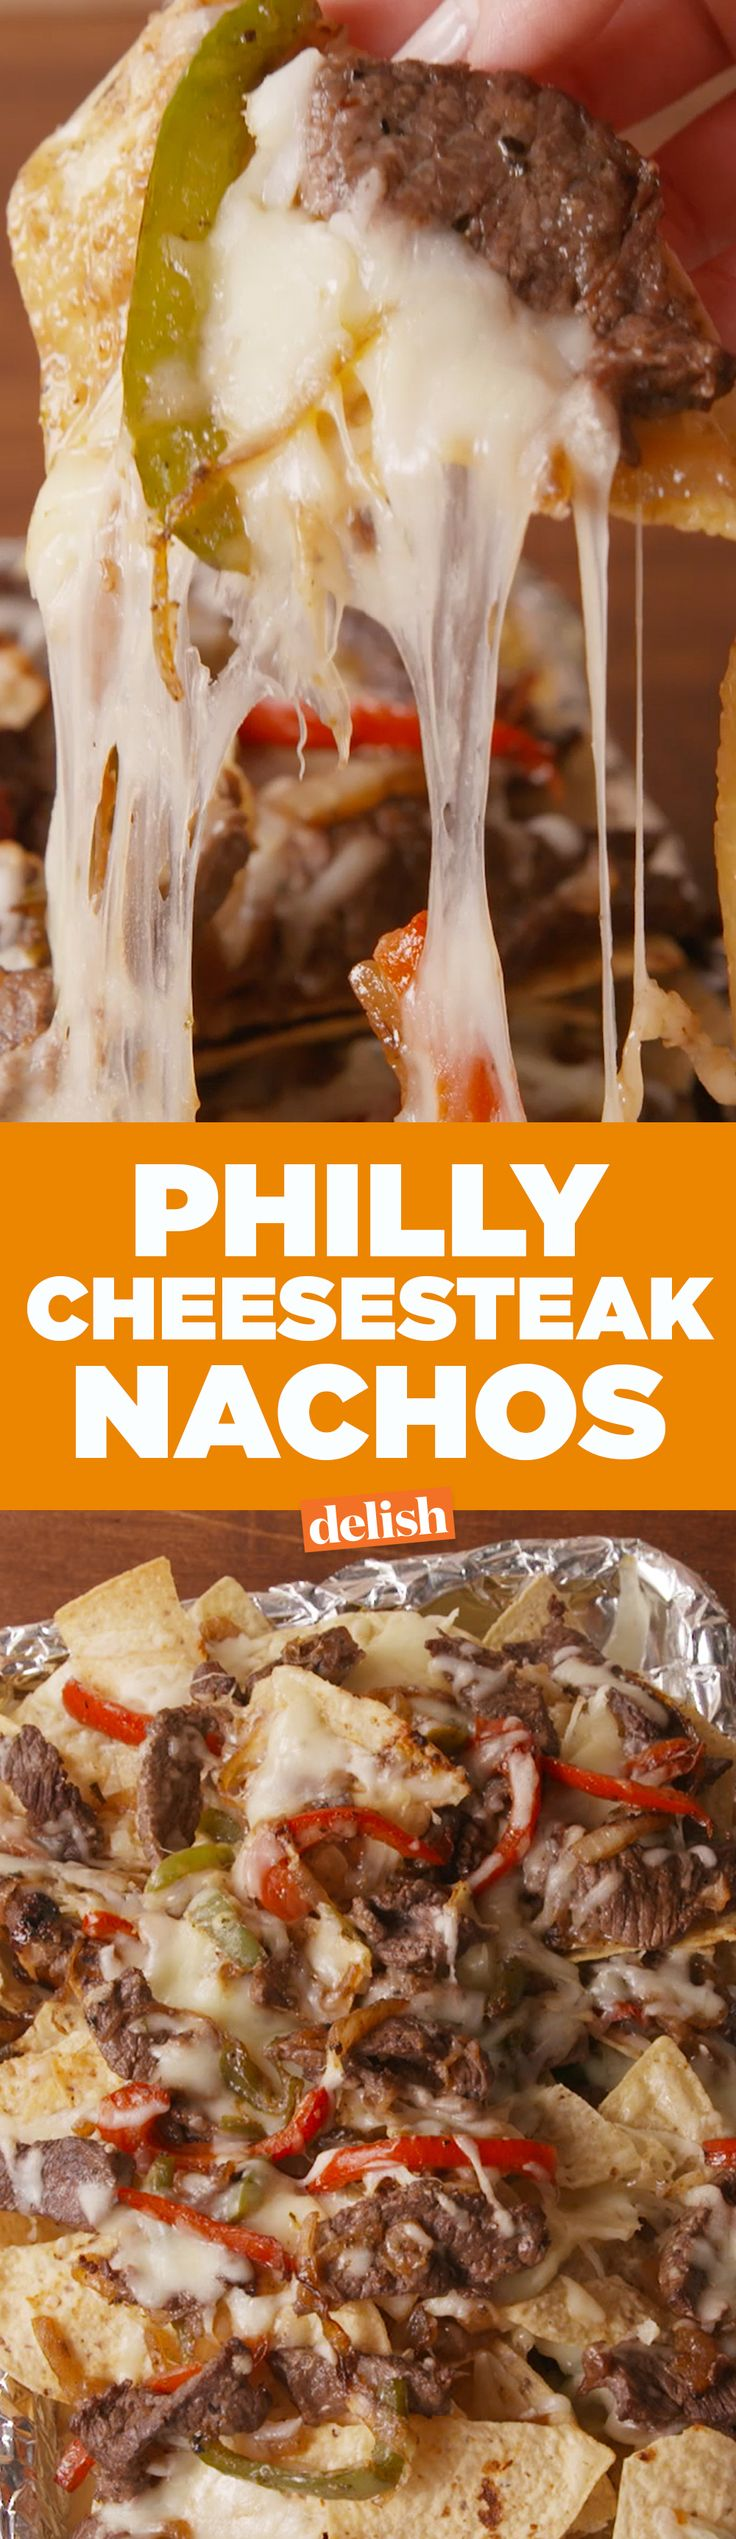 Philly Cheesesteak Nachos deserve the top seed in your bracket. Get the recipe on Delish.com.